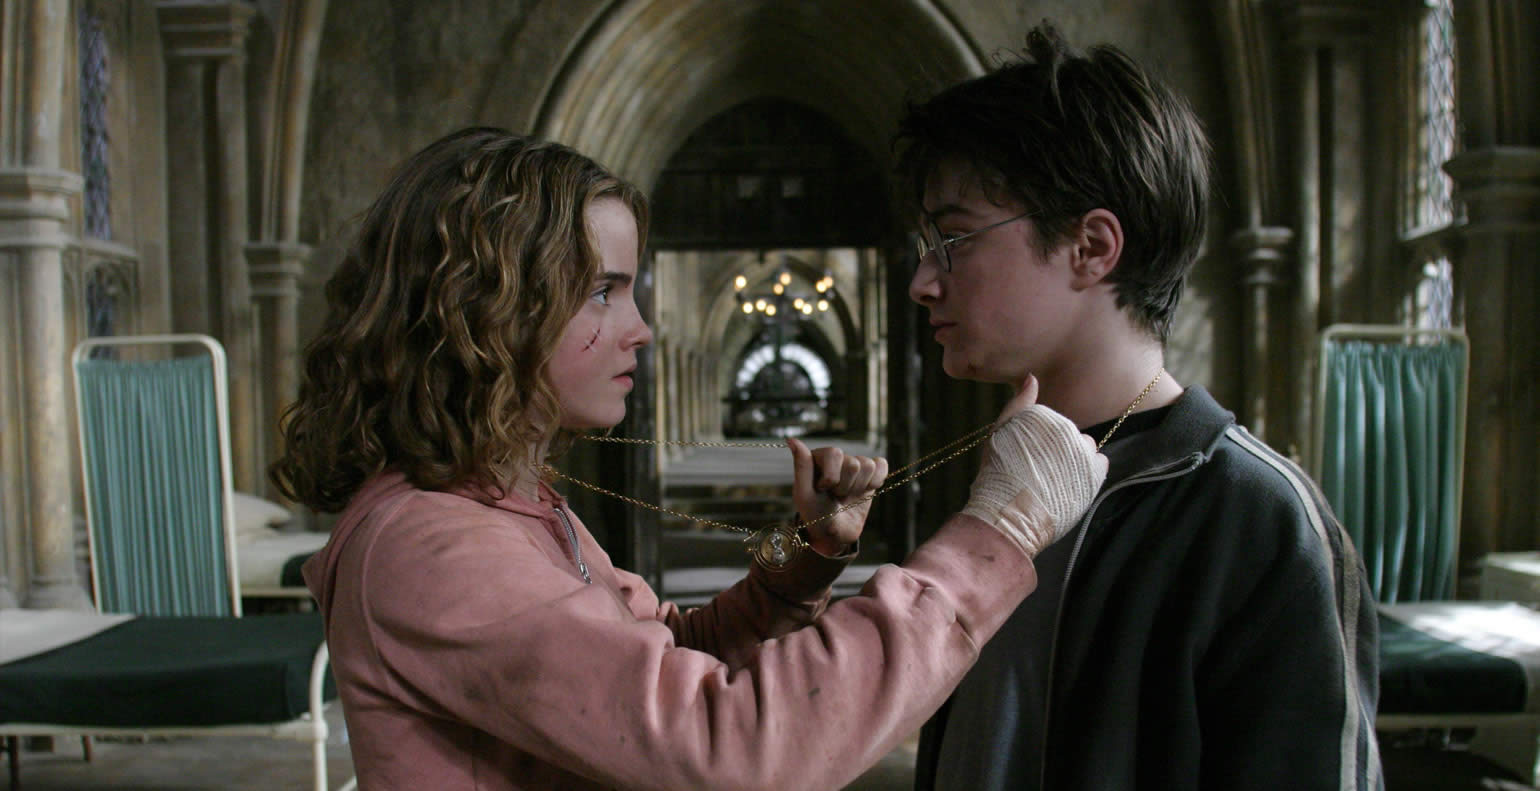 Harry and Hermione caress each other affectionately in Harry Potter and the Prisoner of Azkaban movieloversreviews.blogspot.com